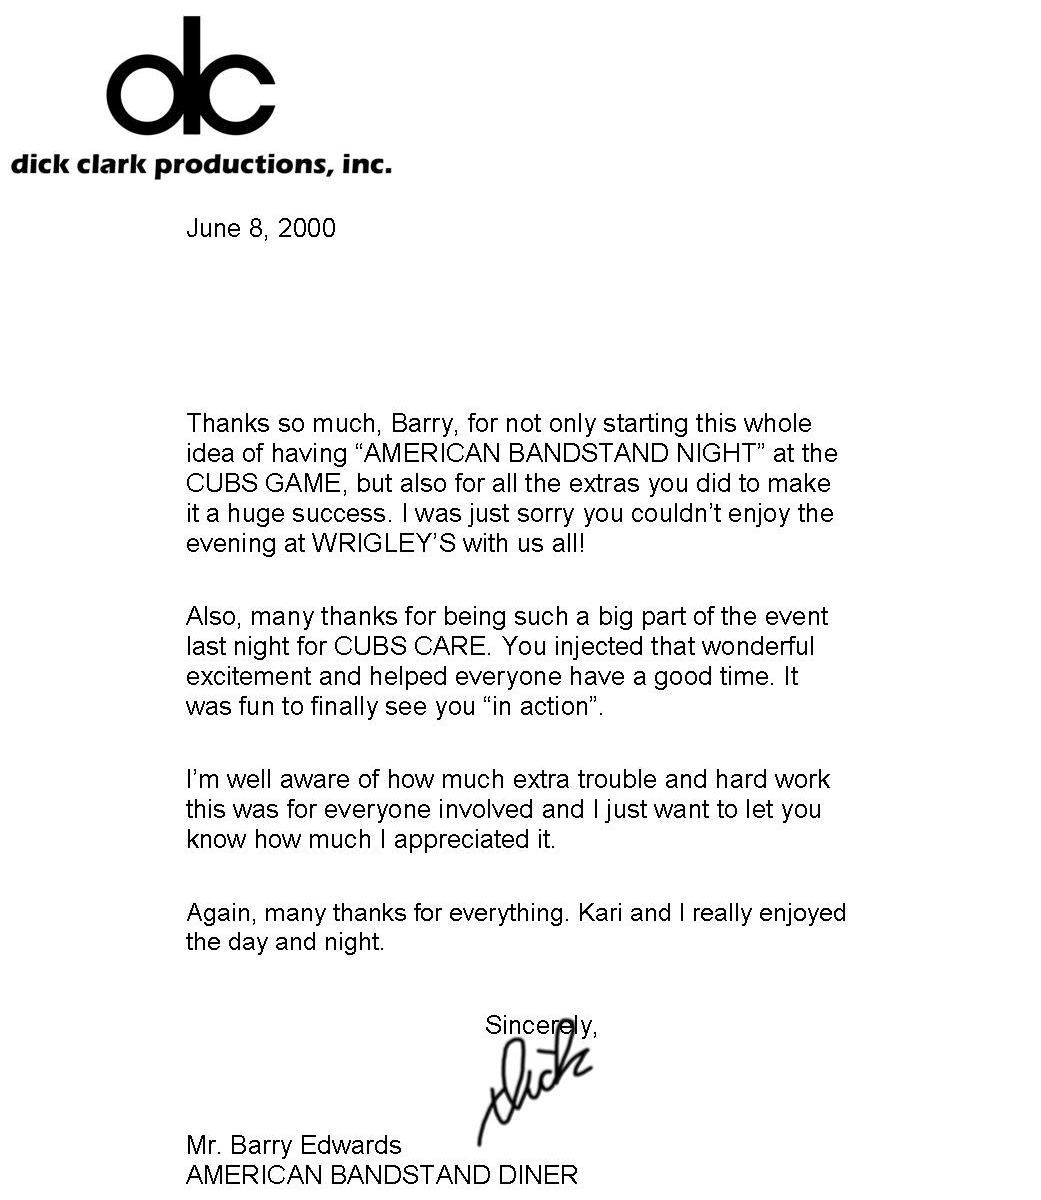 Dick Clark's Letter To Barry Edwards